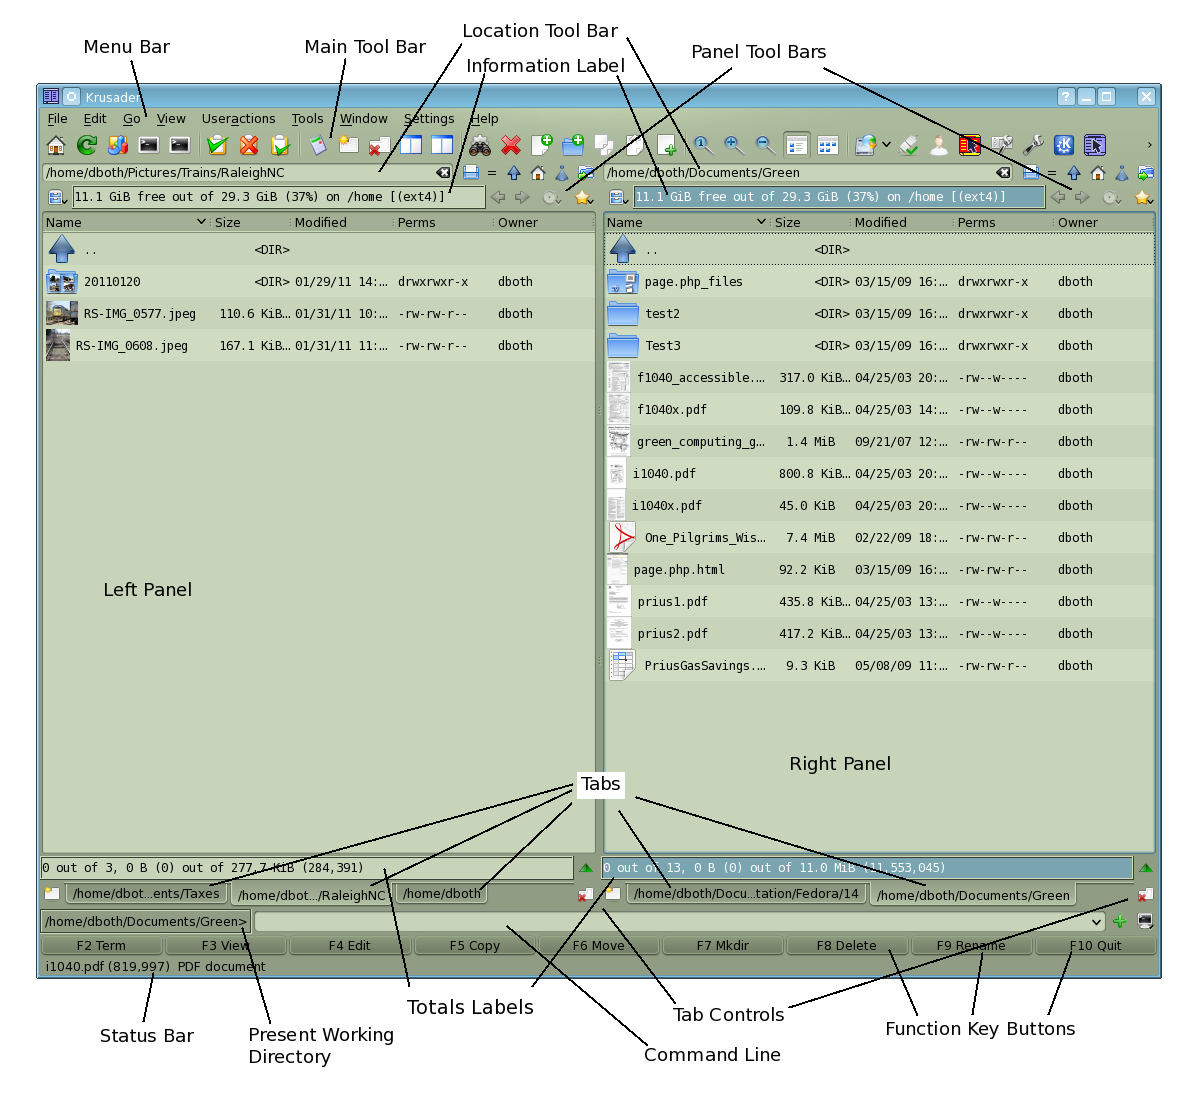 The Krusader User Interface is complex and has many functions.